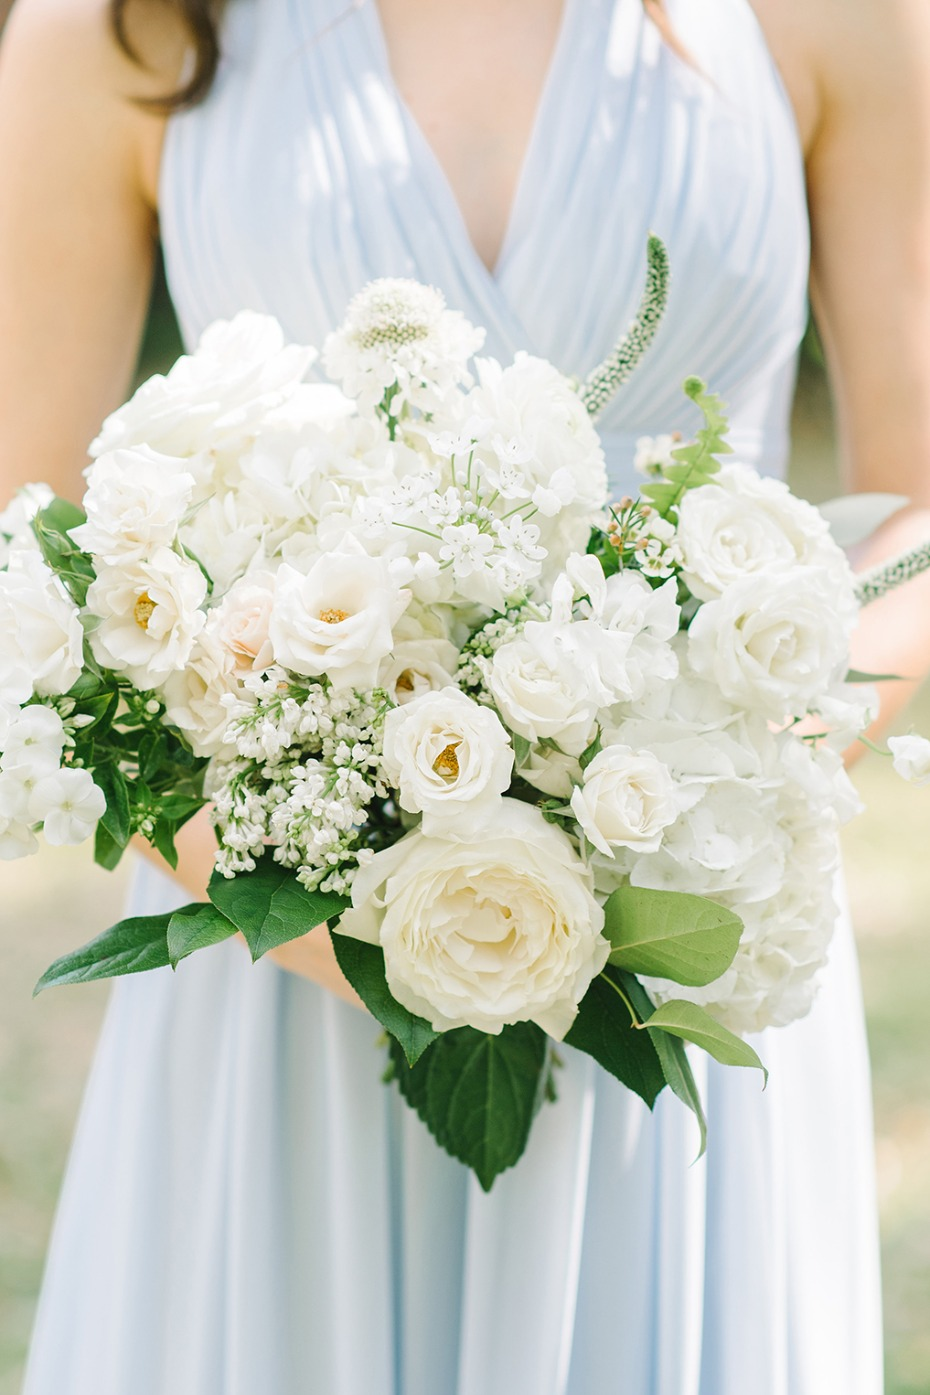 White rose bridesmaid bouquet